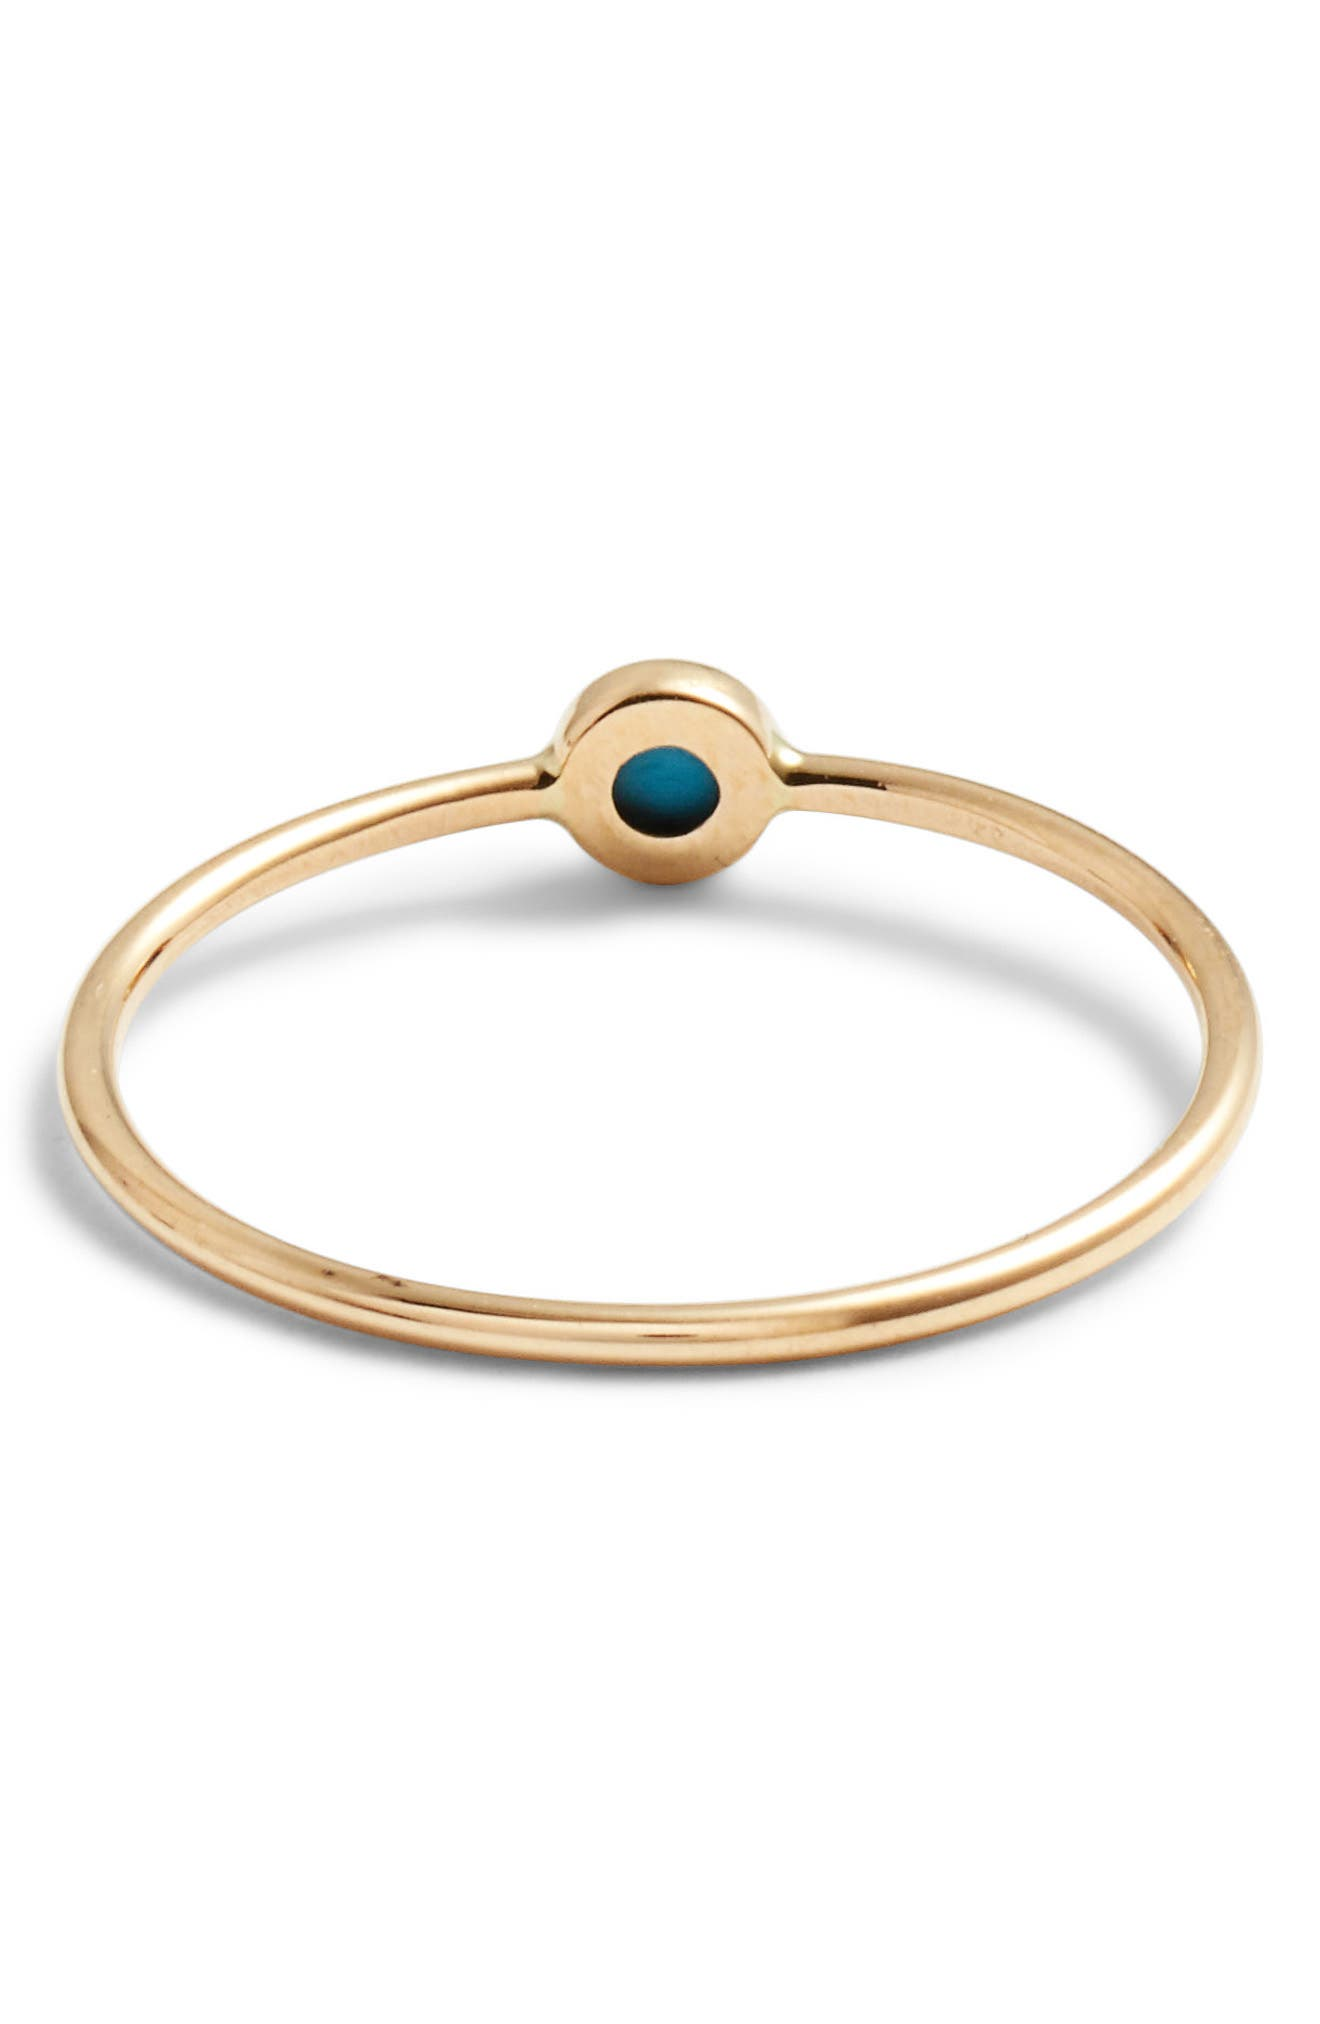 Turquoise Stacking Ring,                             Alternate thumbnail 3, color,                             TURQUOISE